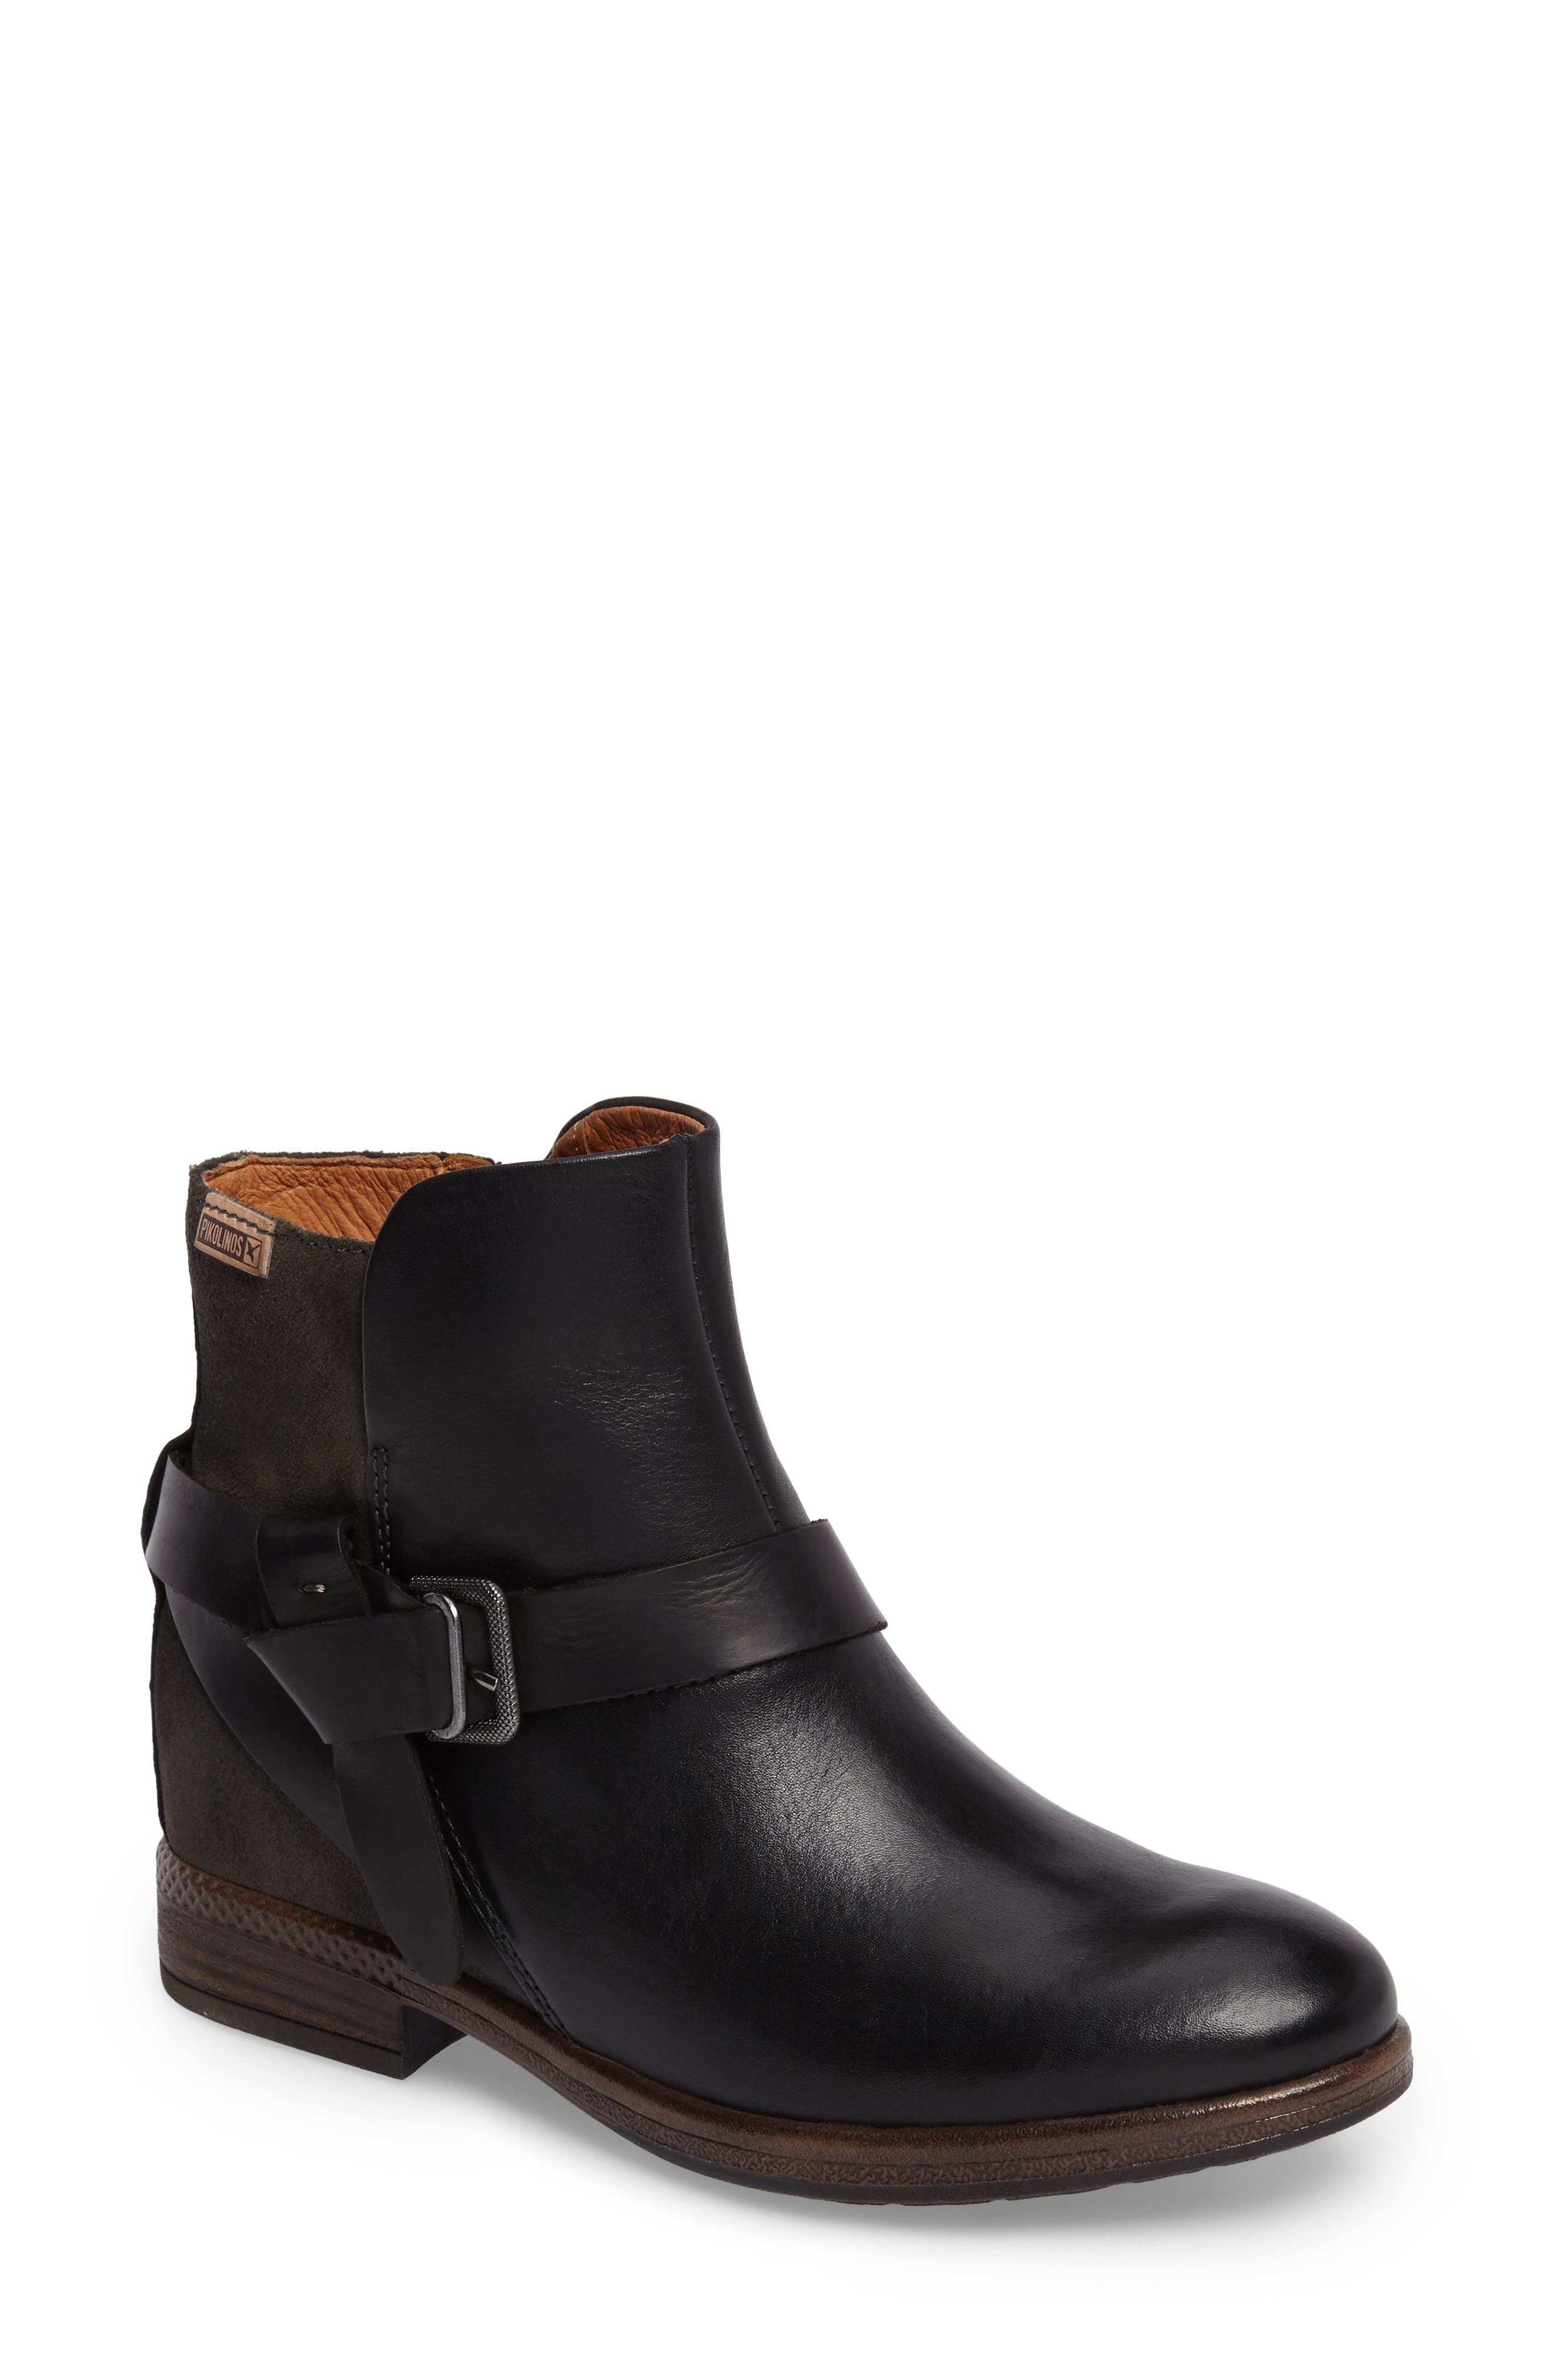 Ordino Bootie,                             Main thumbnail 1, color,                             Black Lead Leather